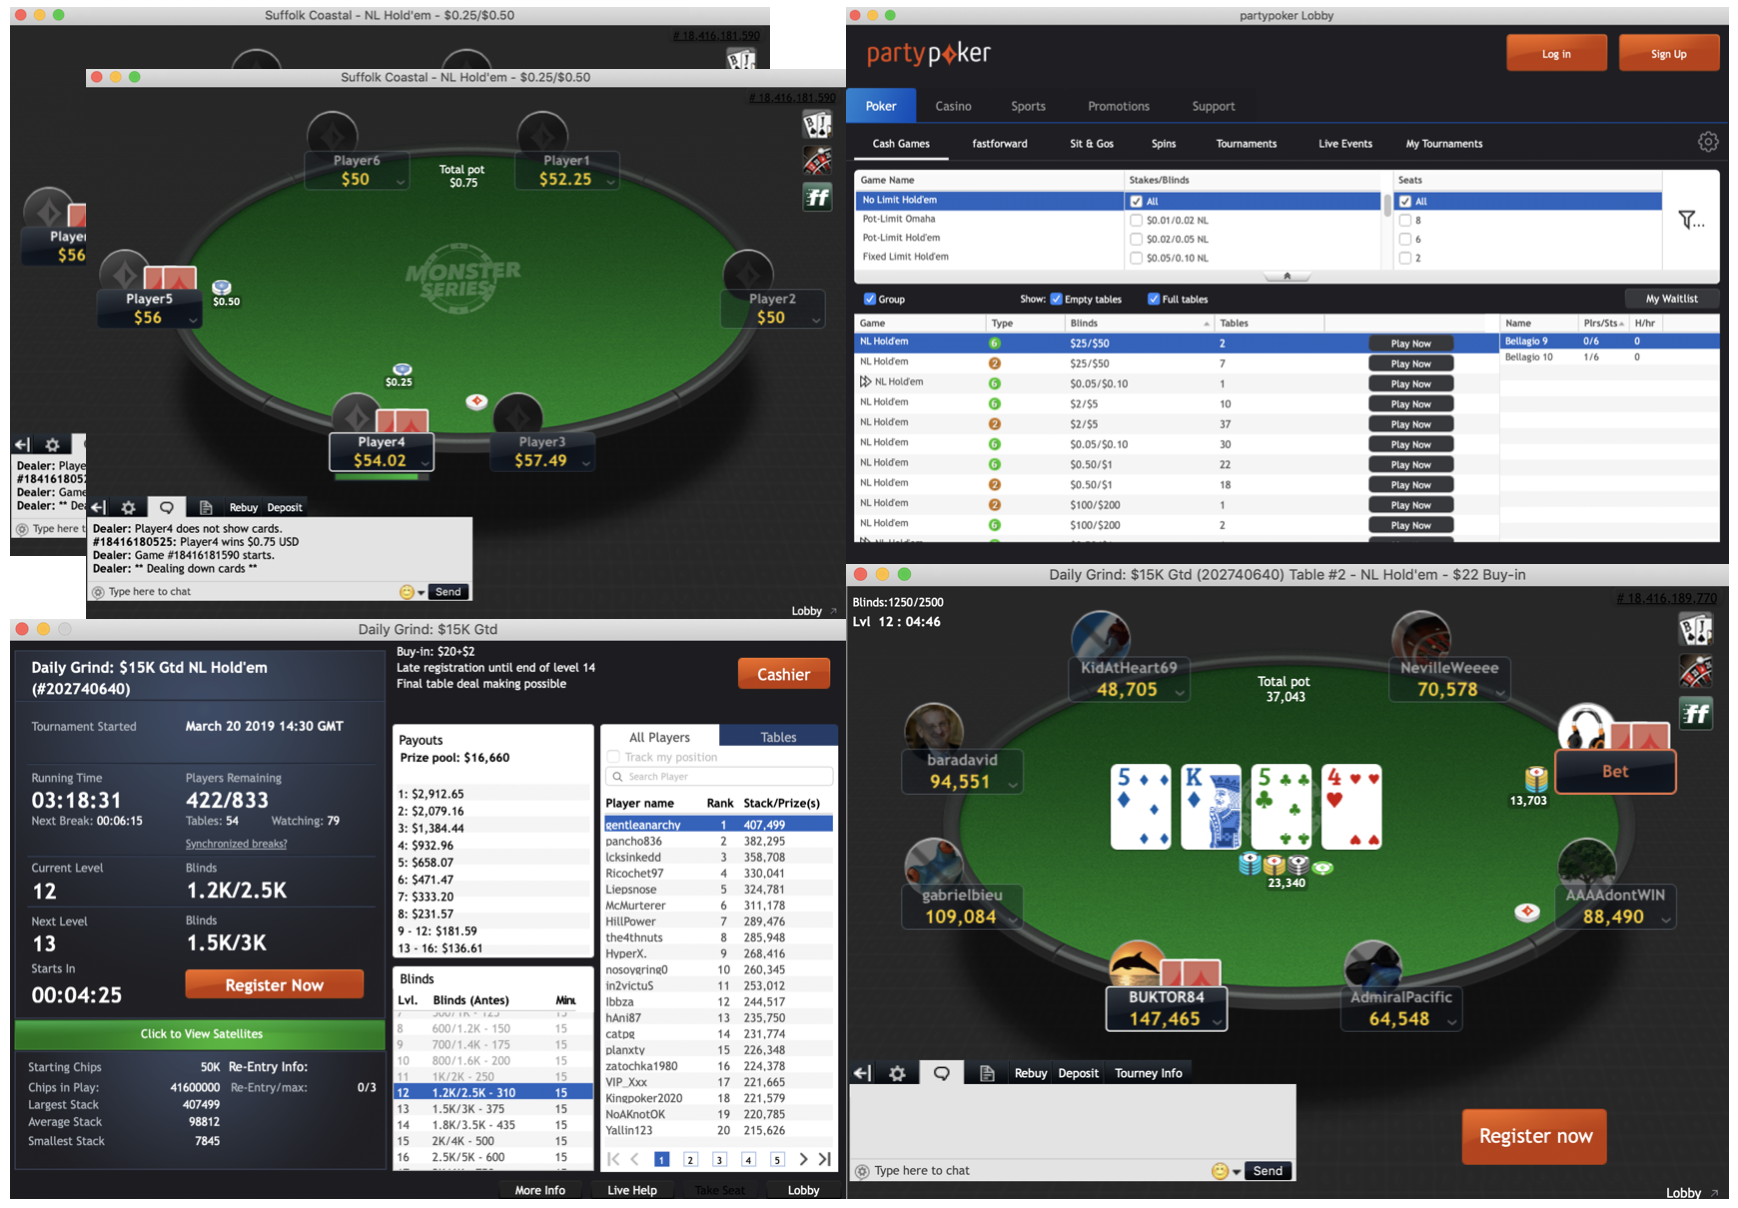 partypoker software updated